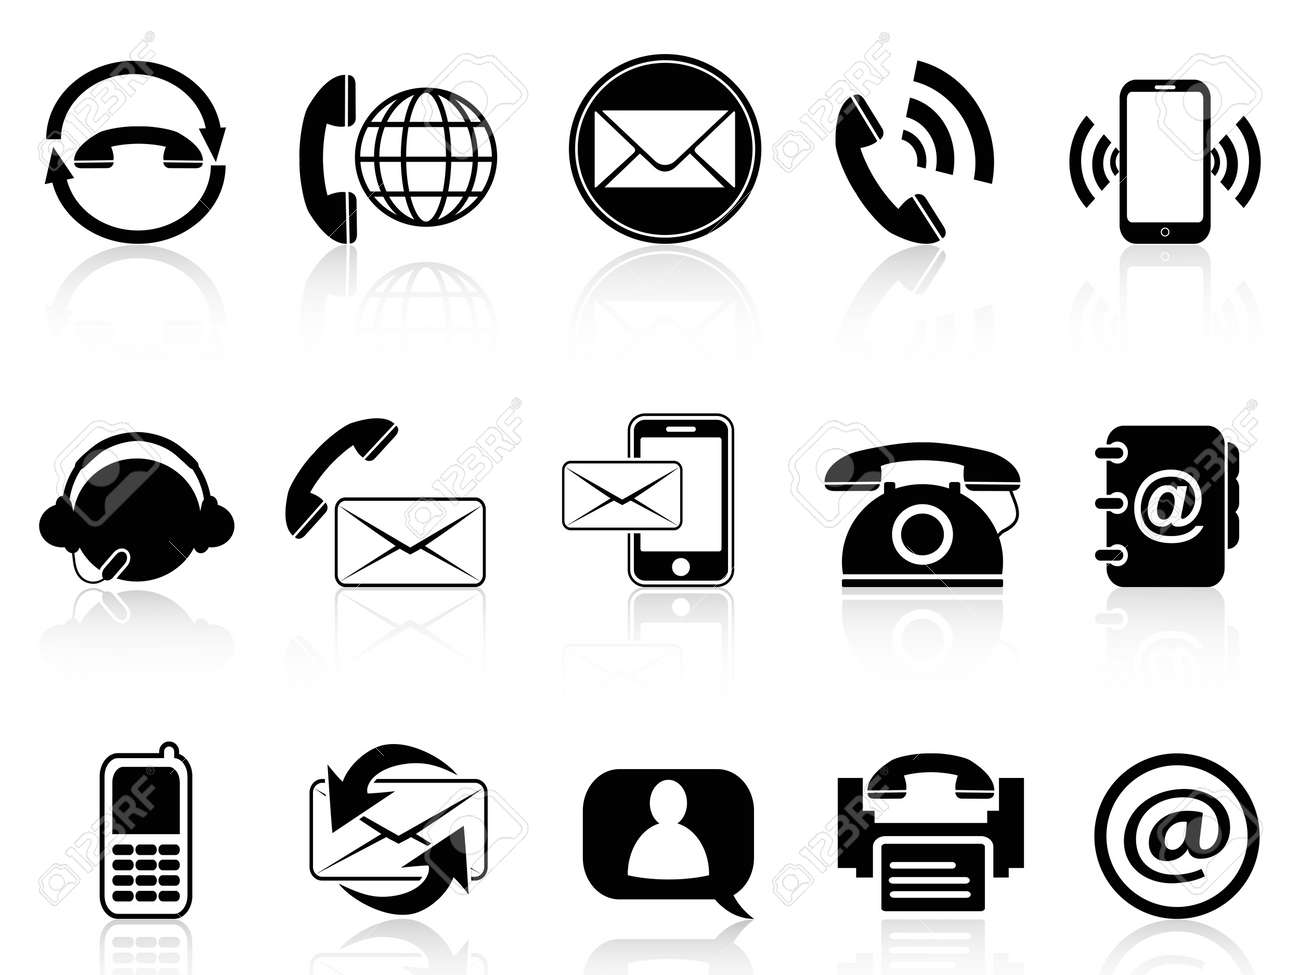 isolated contact icons set from white background - 21579643